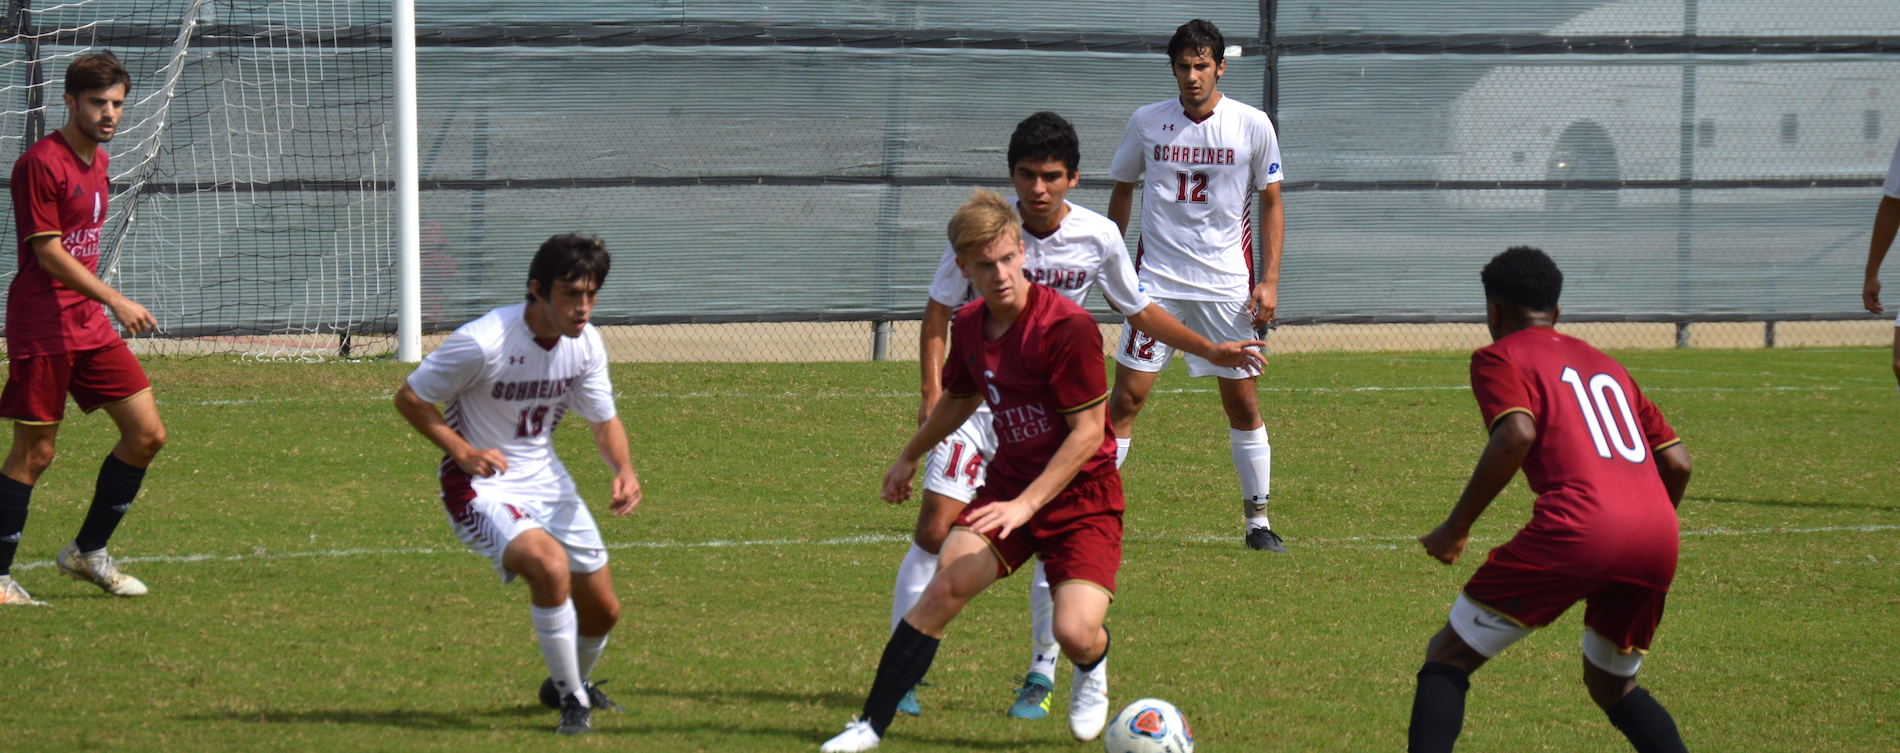 'Roos Hold Off TLU for 1-0 Victory